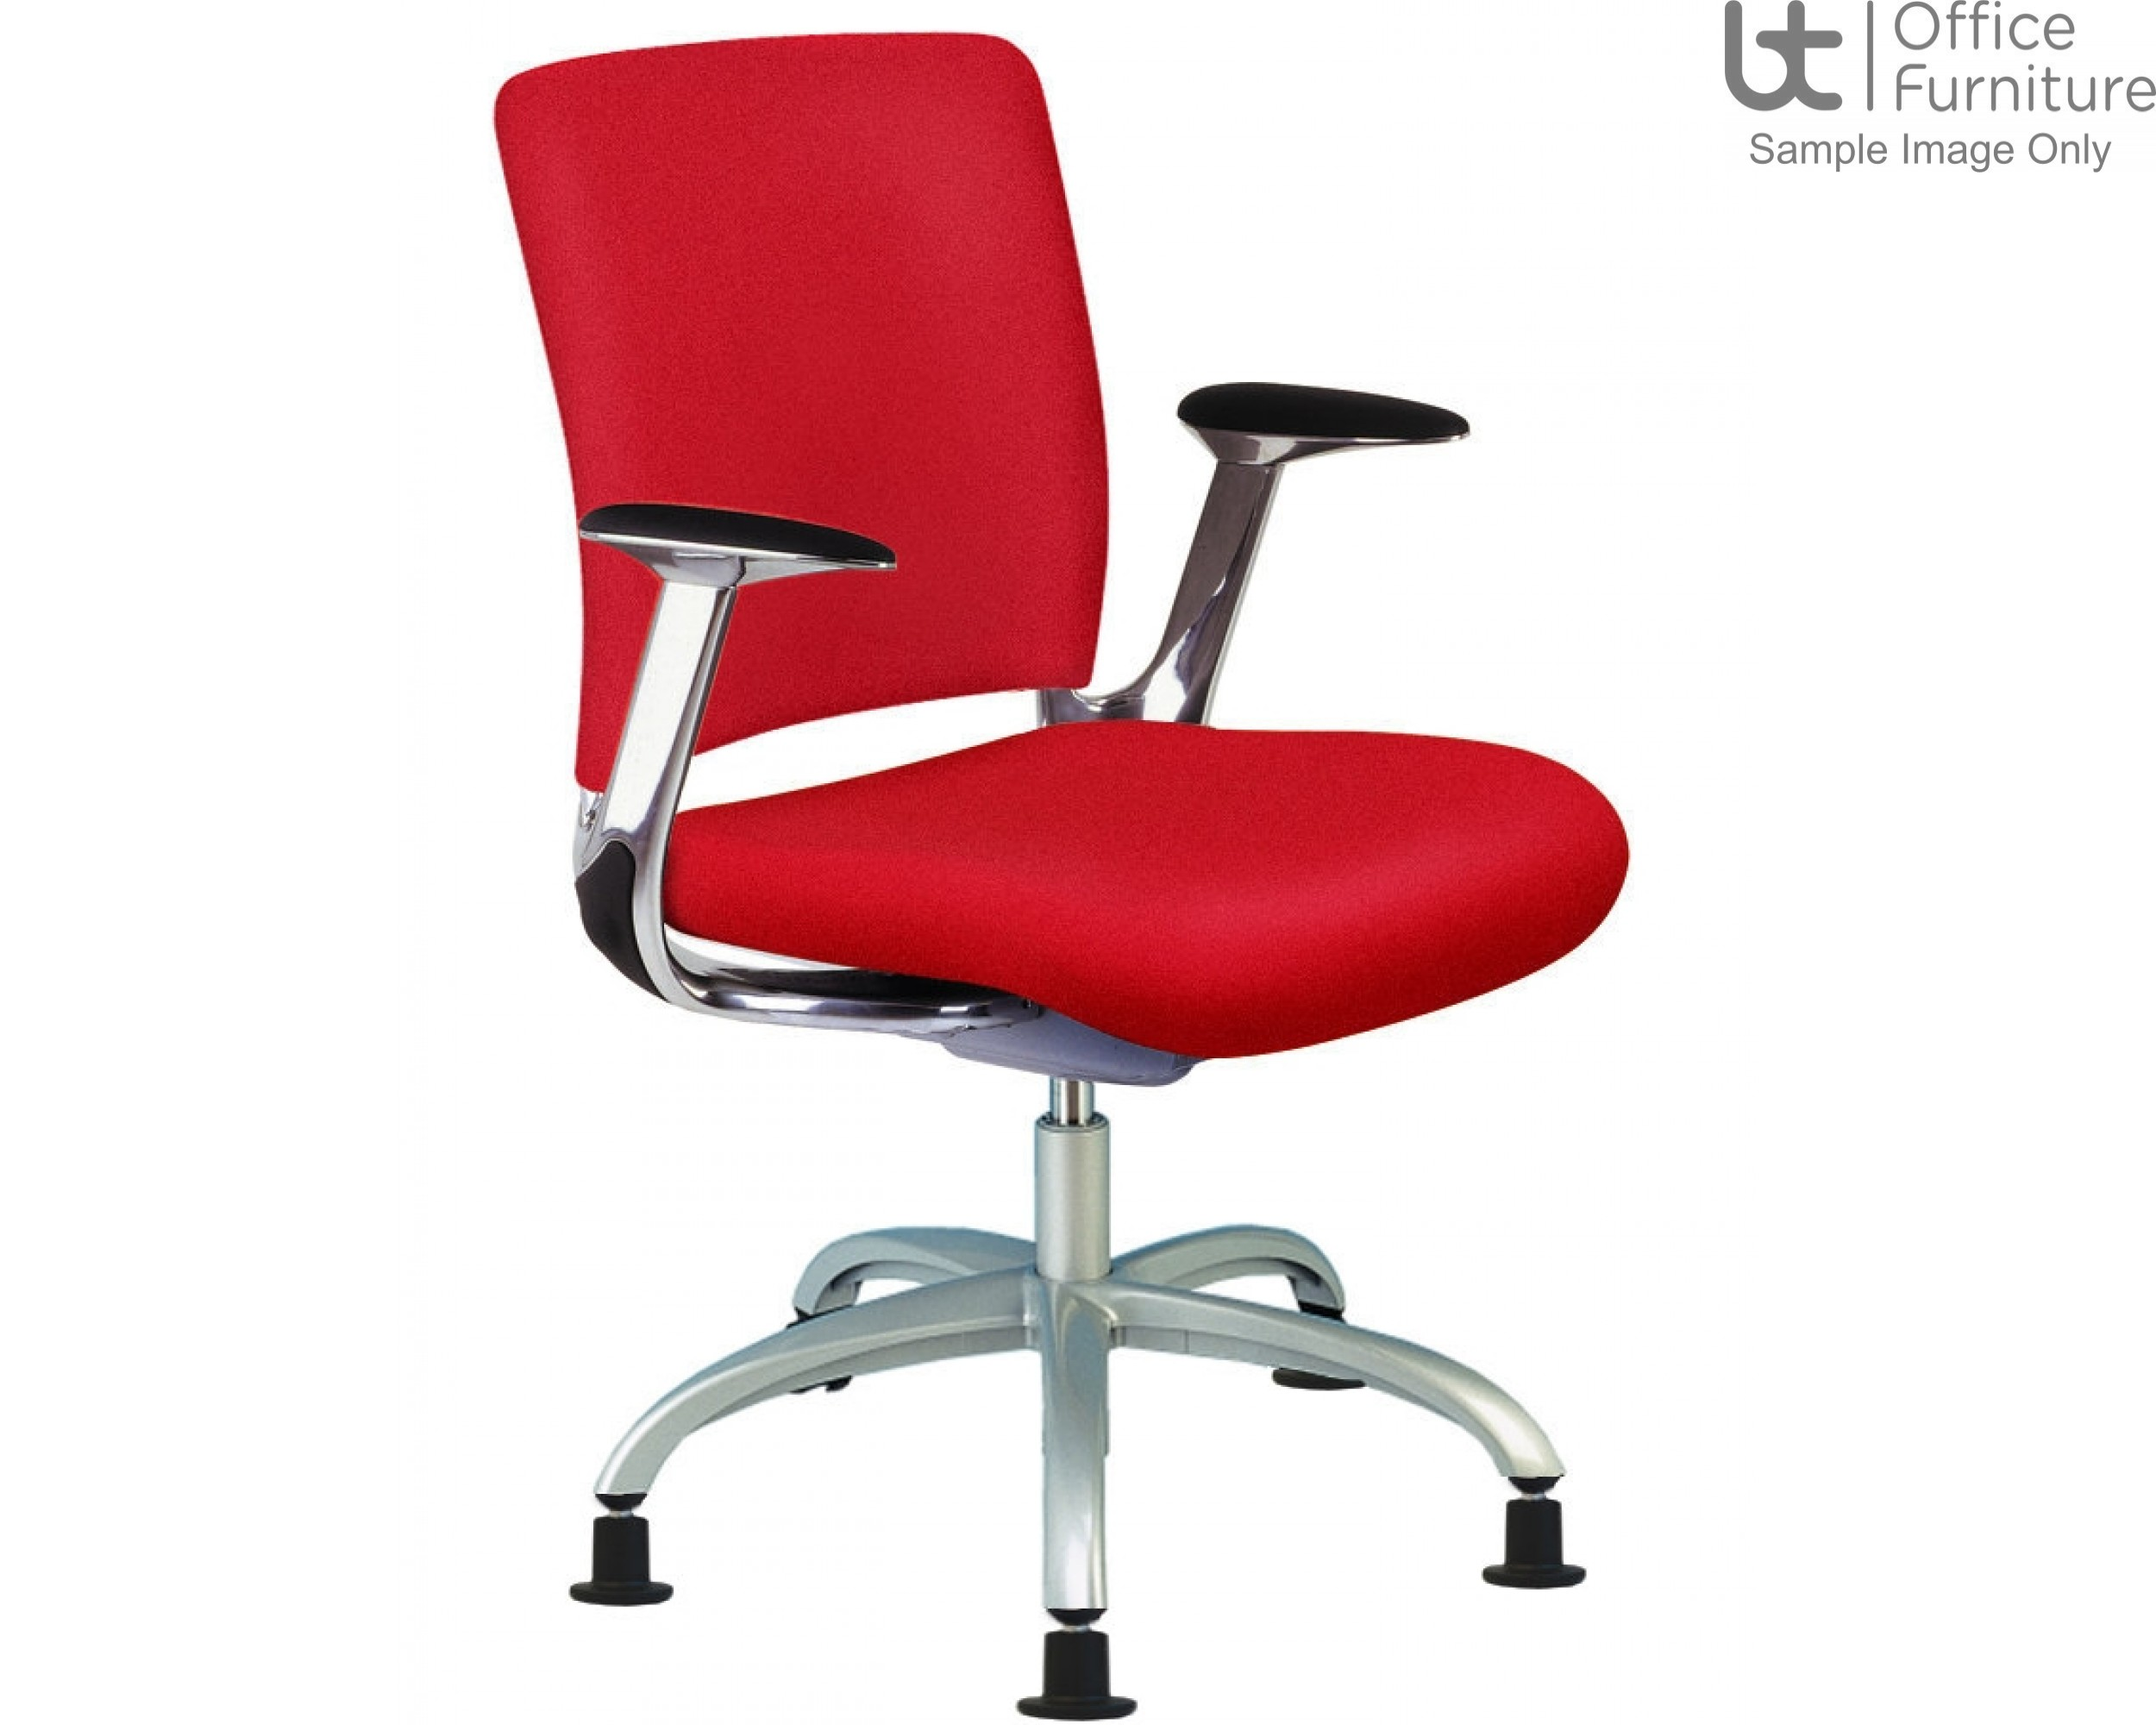 Verco Operator/Task Chair - V-Smart Medium Back Conference Chair with Arms